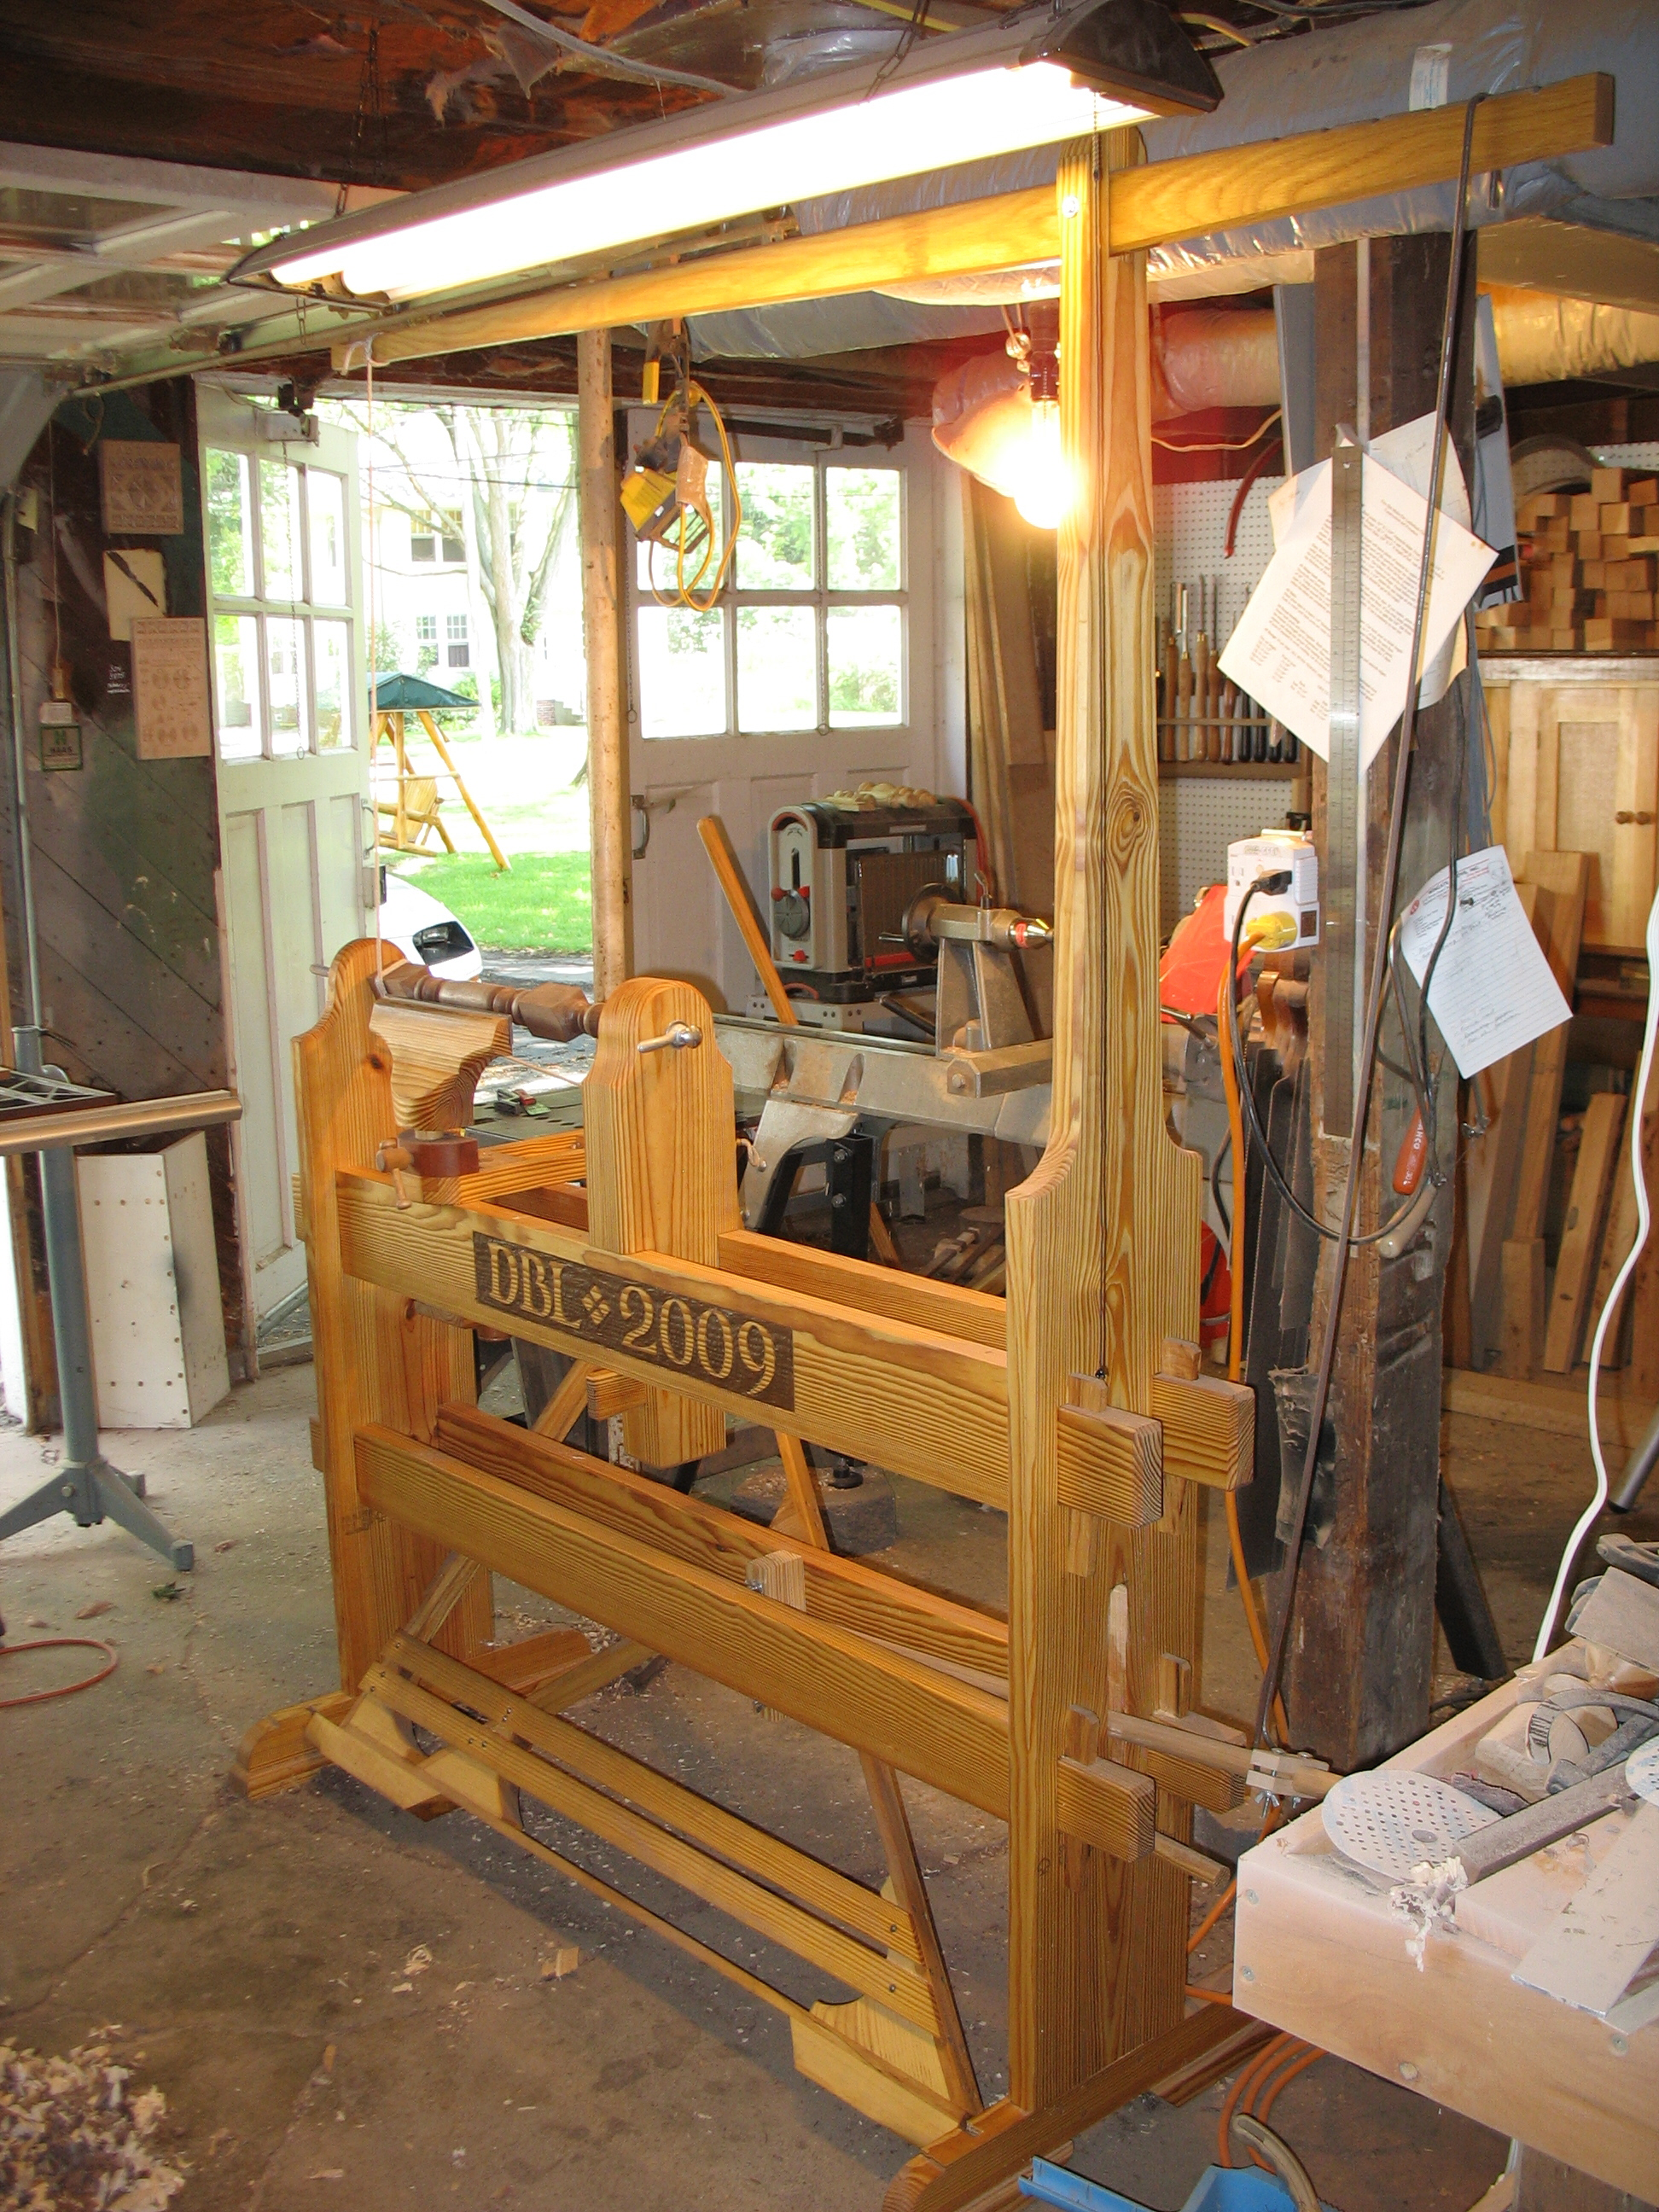 Spring pole lathe details | A Woodworker's Musings